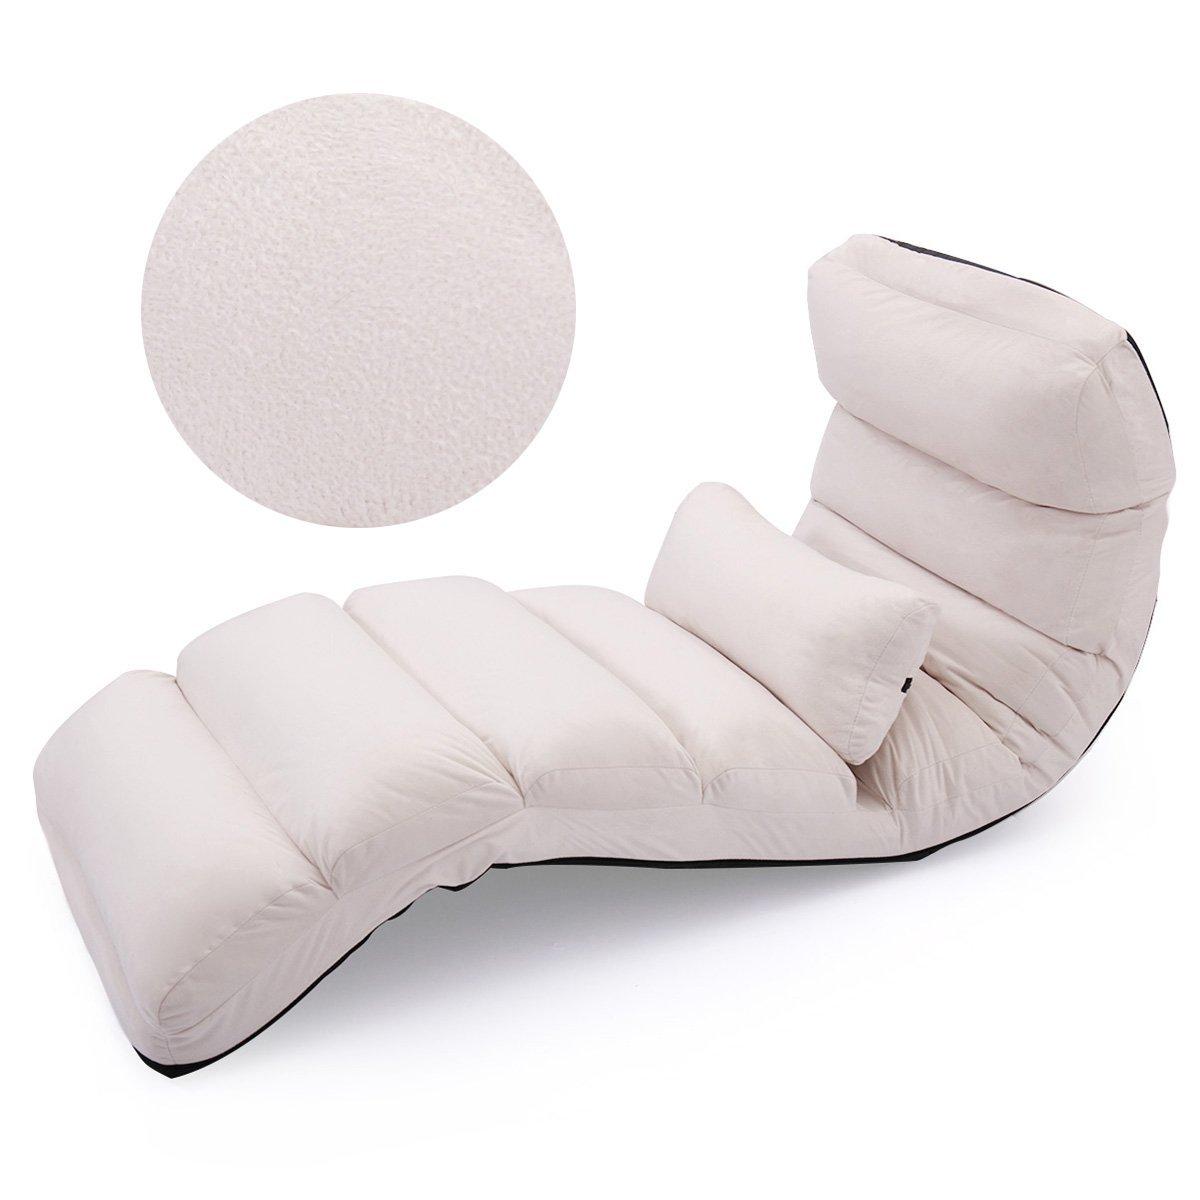 Cheap Foldable Beds India Find Foldable Beds India Deals On